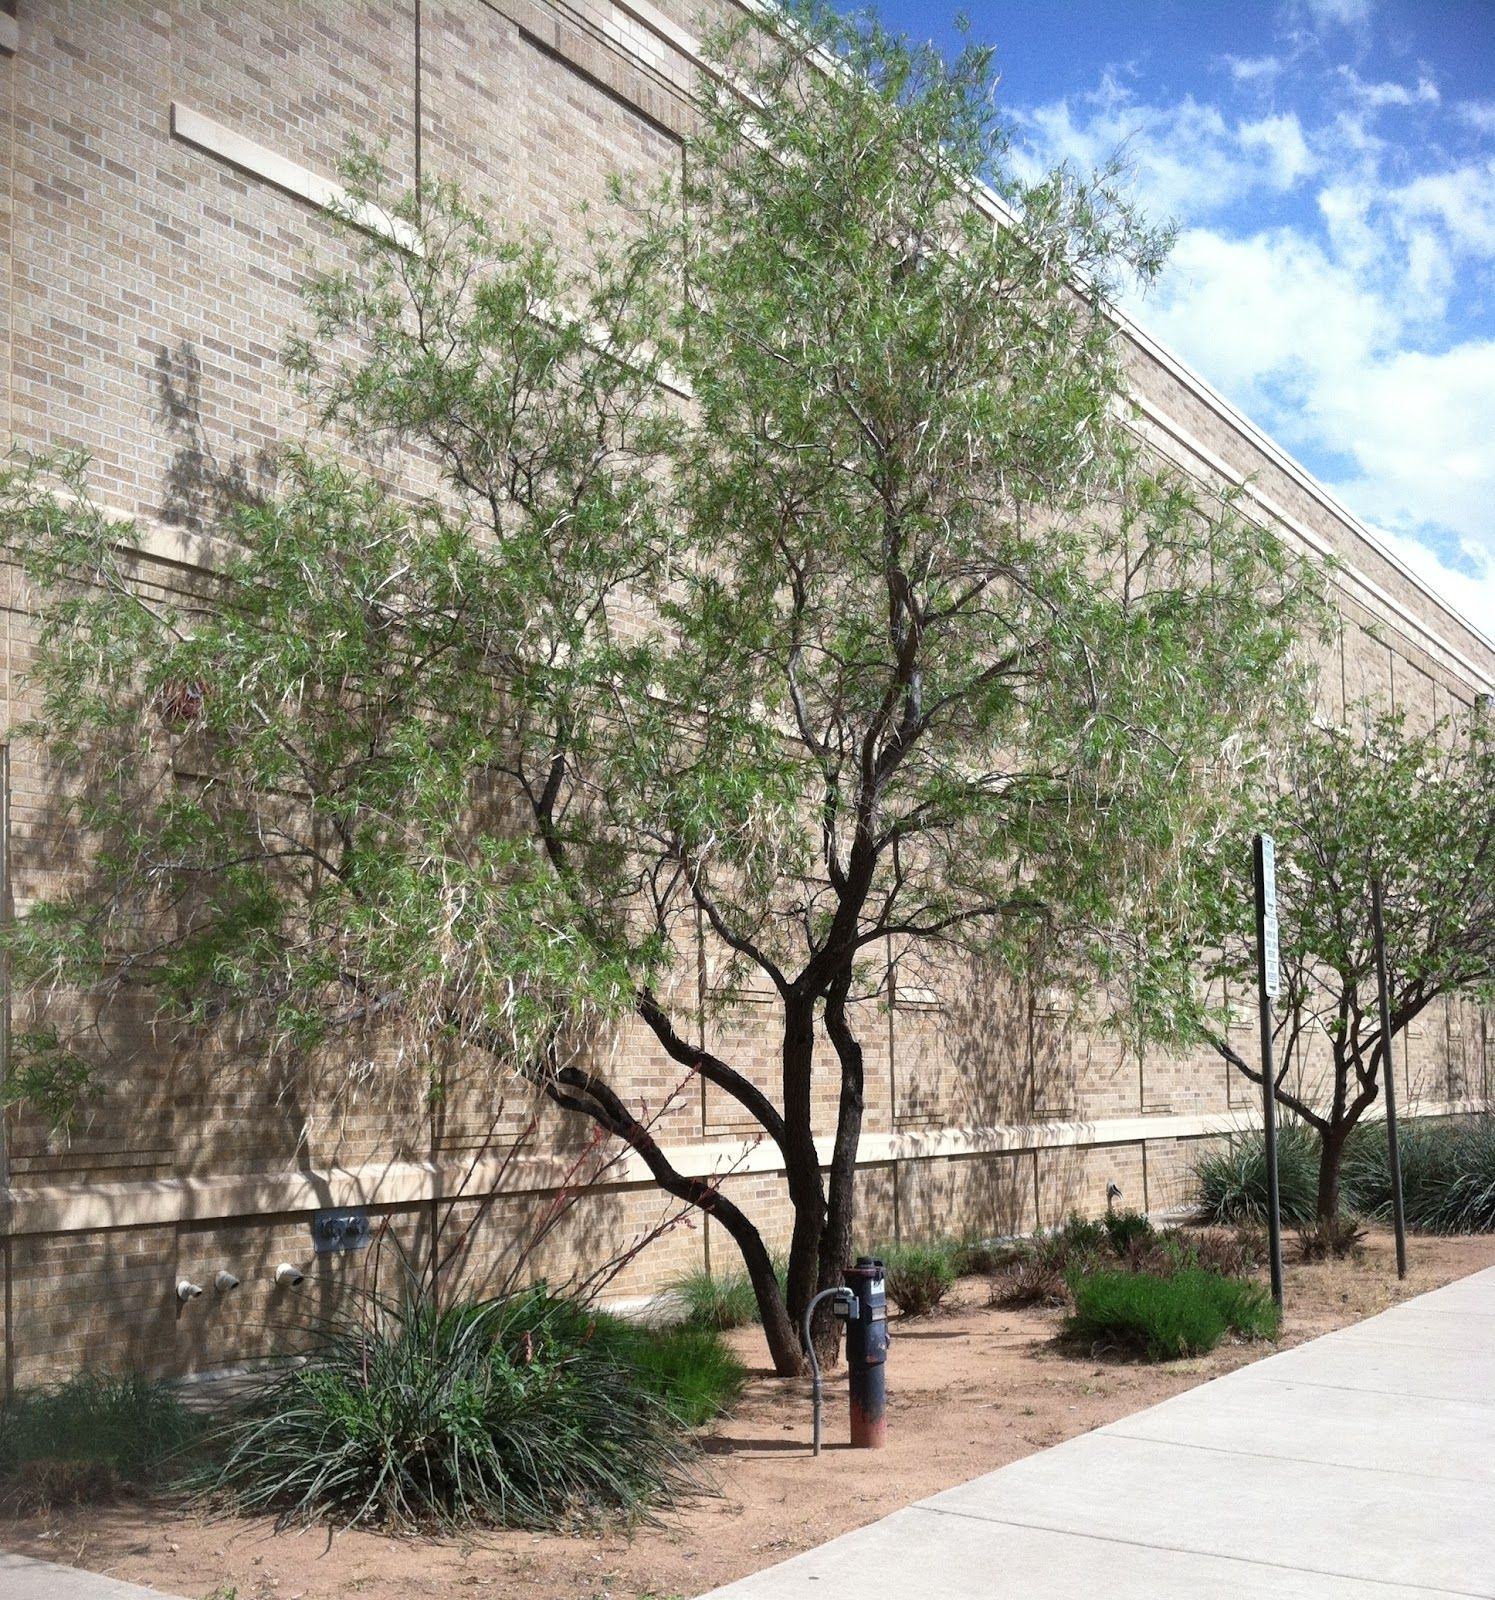 Desert Willow Tree Problems Good Pictures Of The